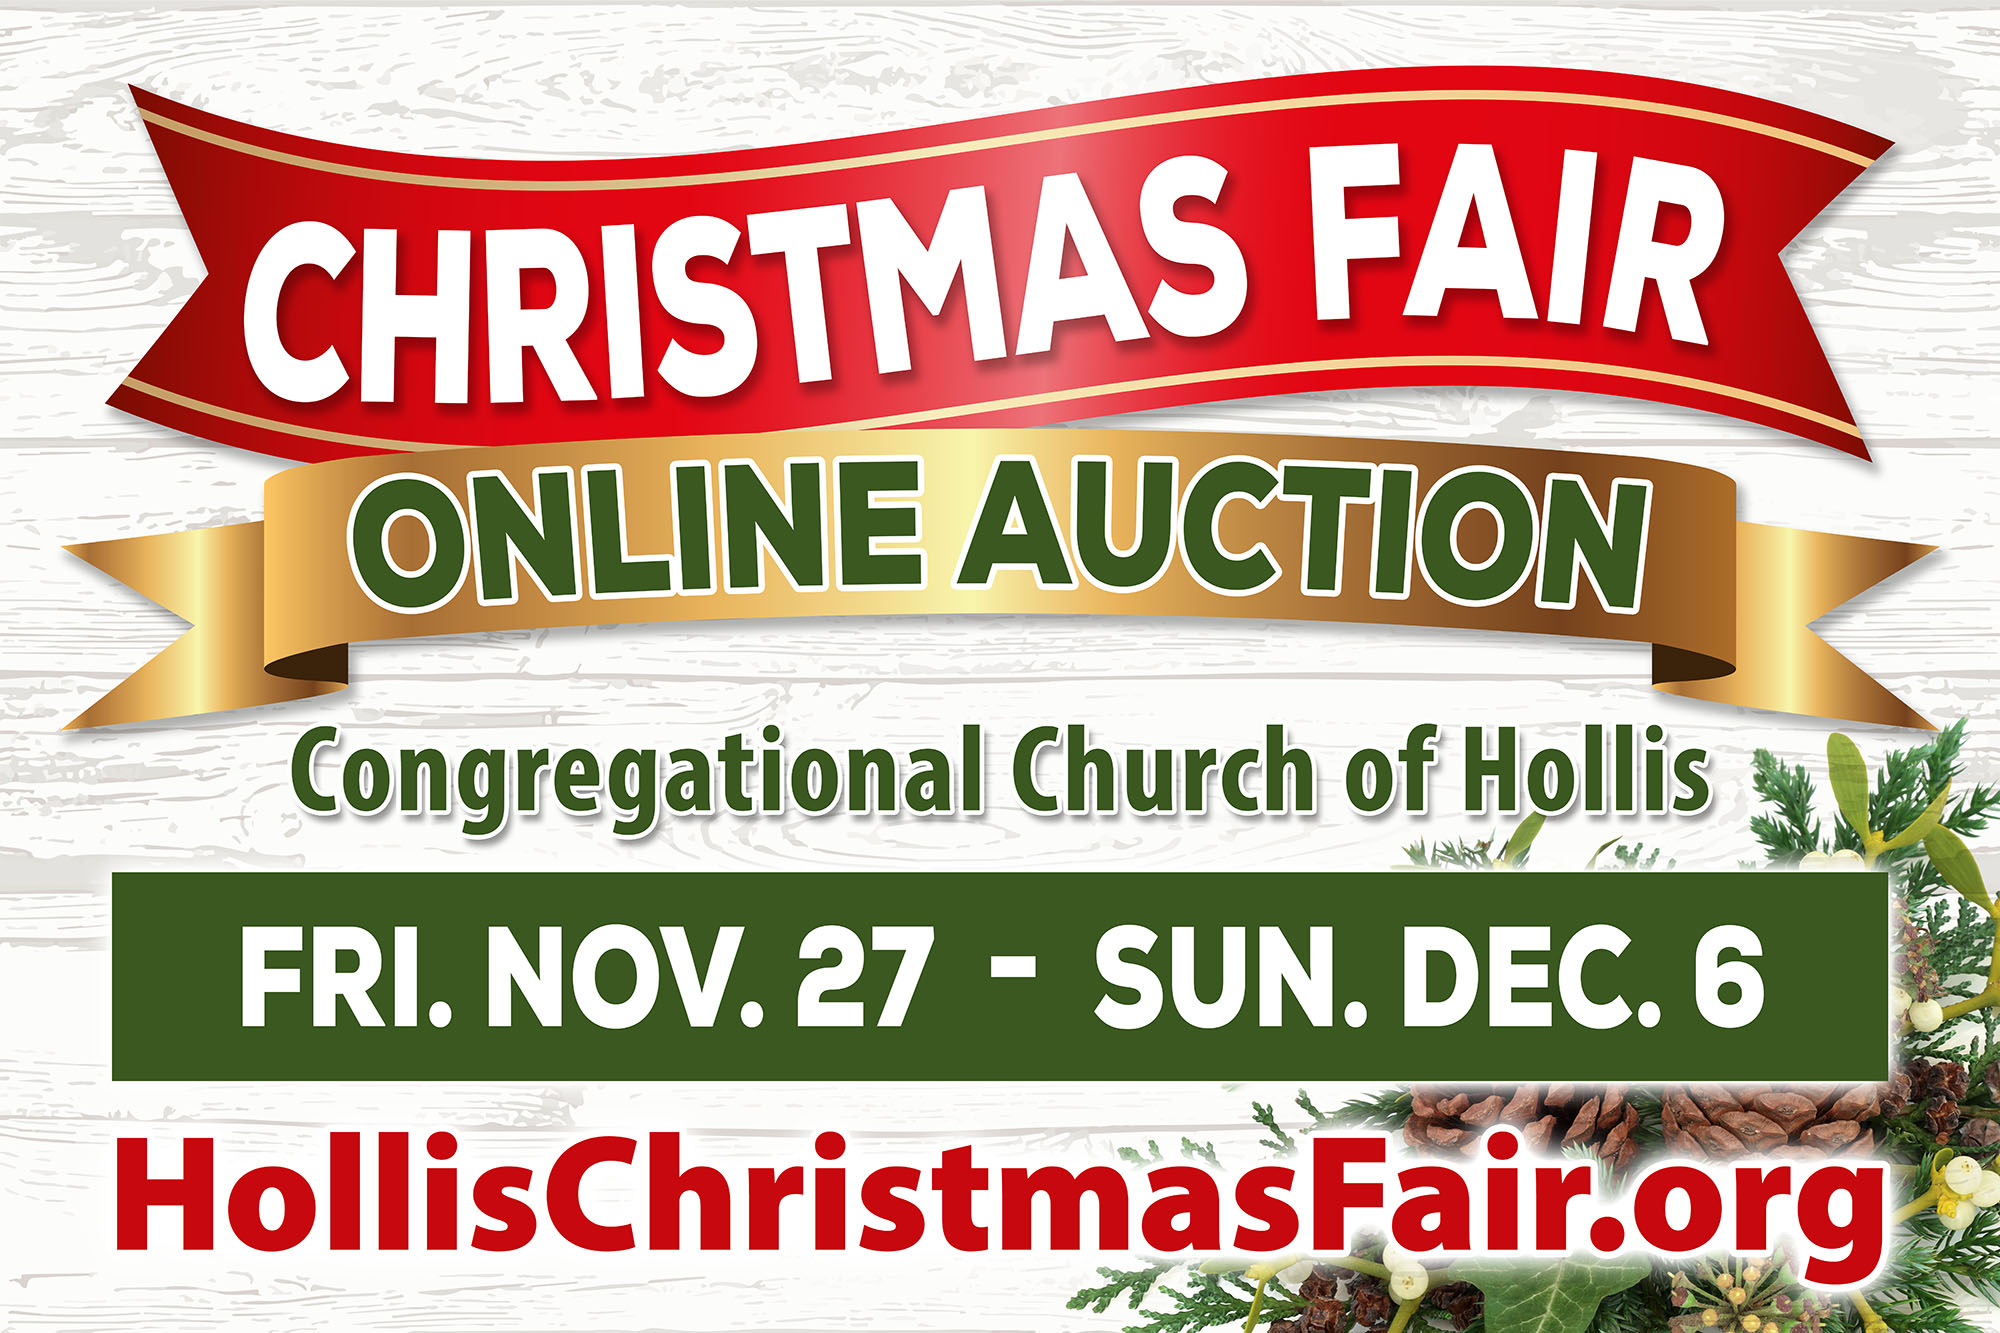 Christmas Fair Online Auction – Congregational Church of Hollis